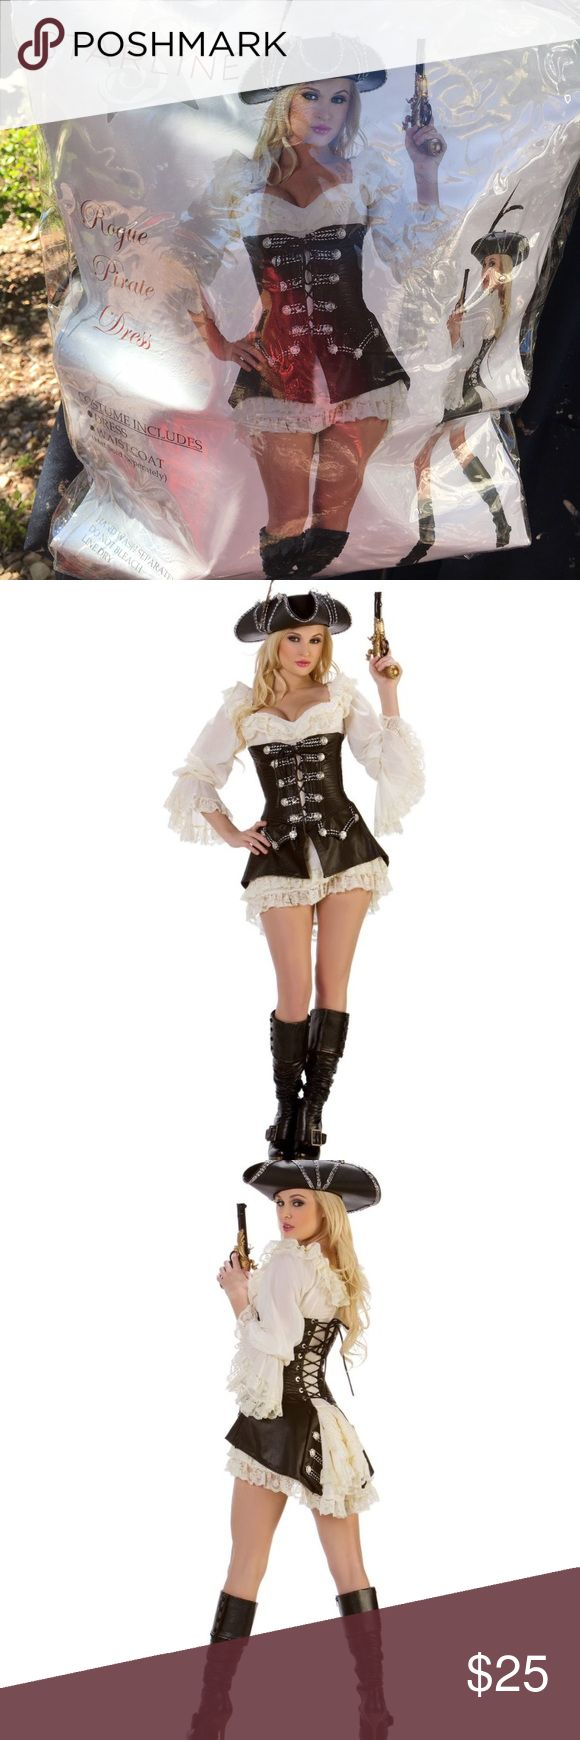 Sexy pirate costume Complete sexy pirate costume. Worn once. In great condition. Includes matching boots, hat and gun. Other